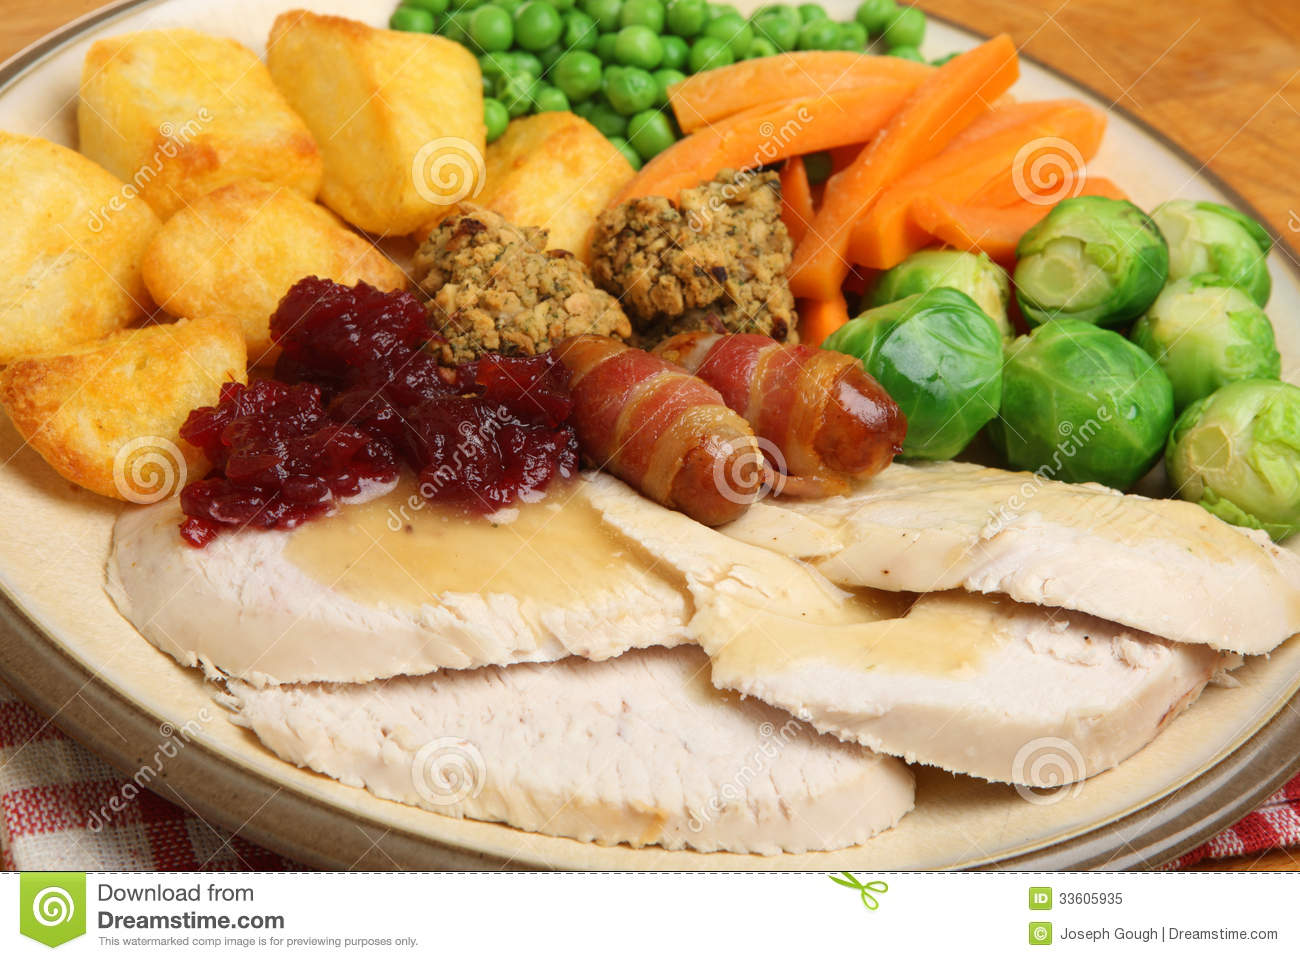 Roast Turkey Christmas Dinner Royalty Free Stock Photo - Image ...